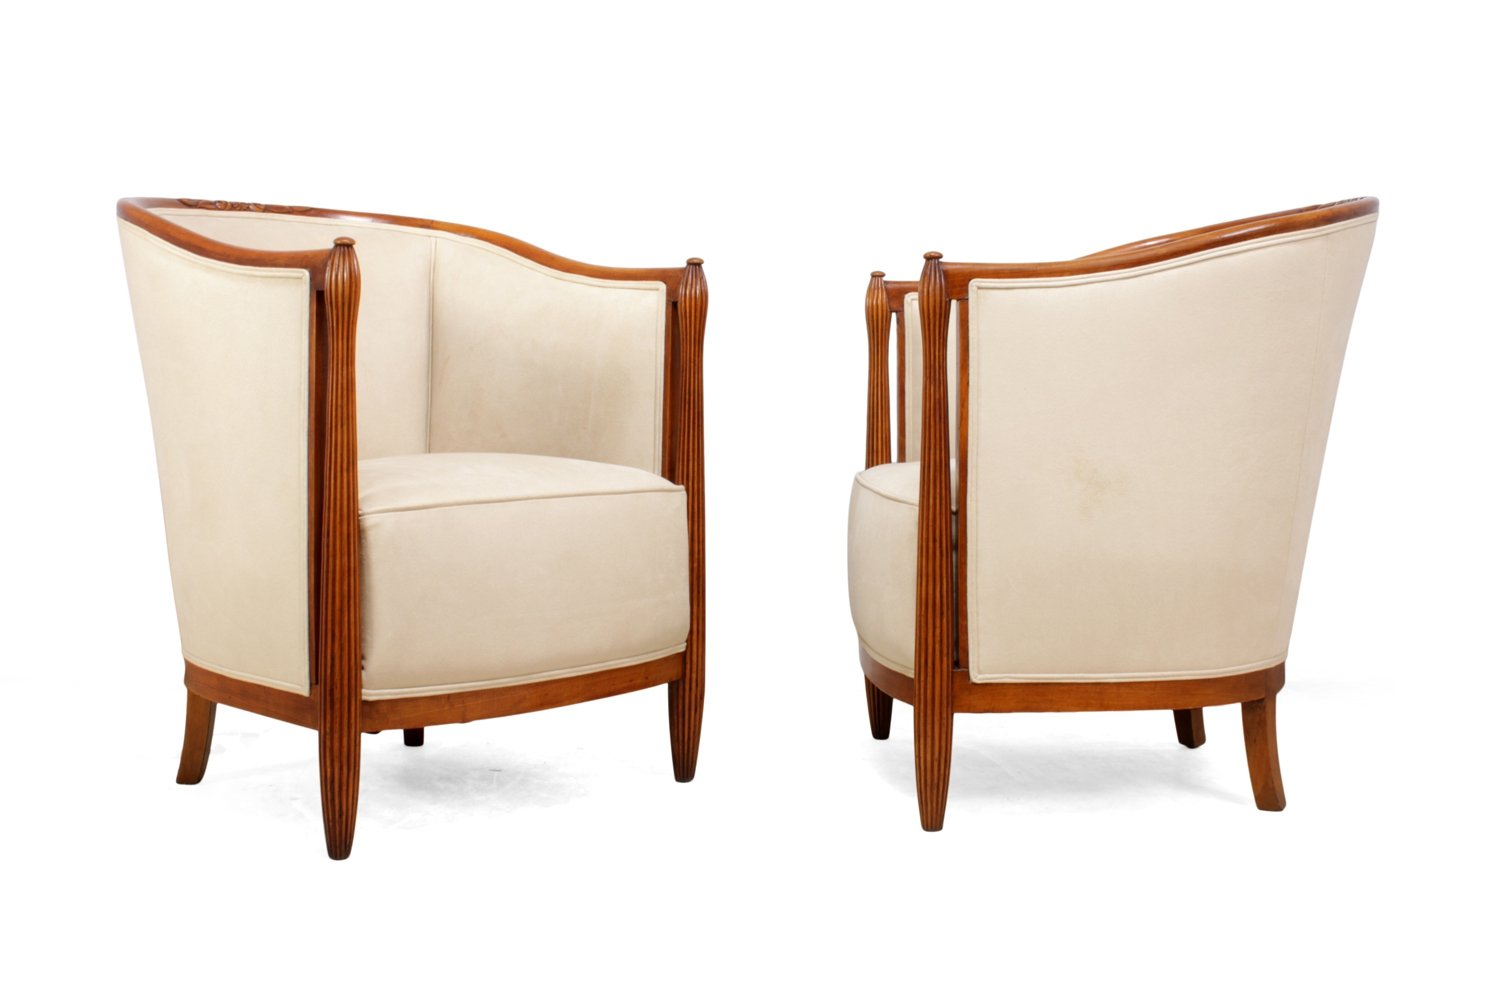 A Pair of French Art Deco Salon Chairs by Paul Folllot ...